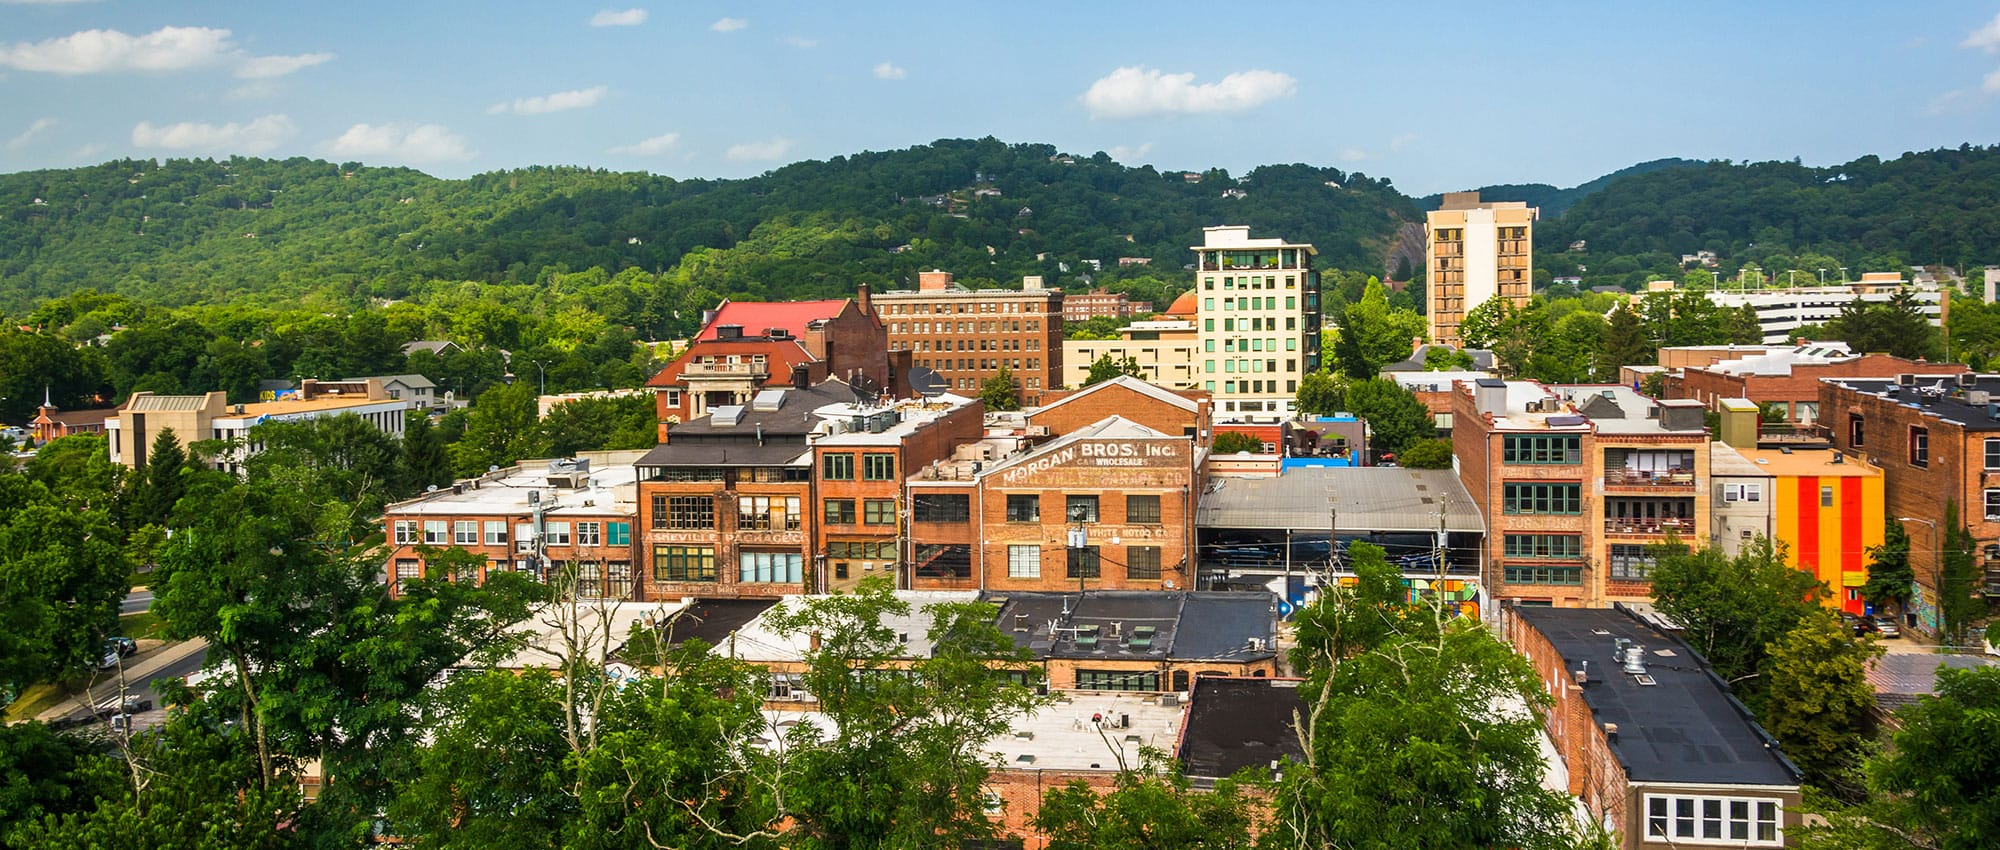 Overview of Asheville, NC